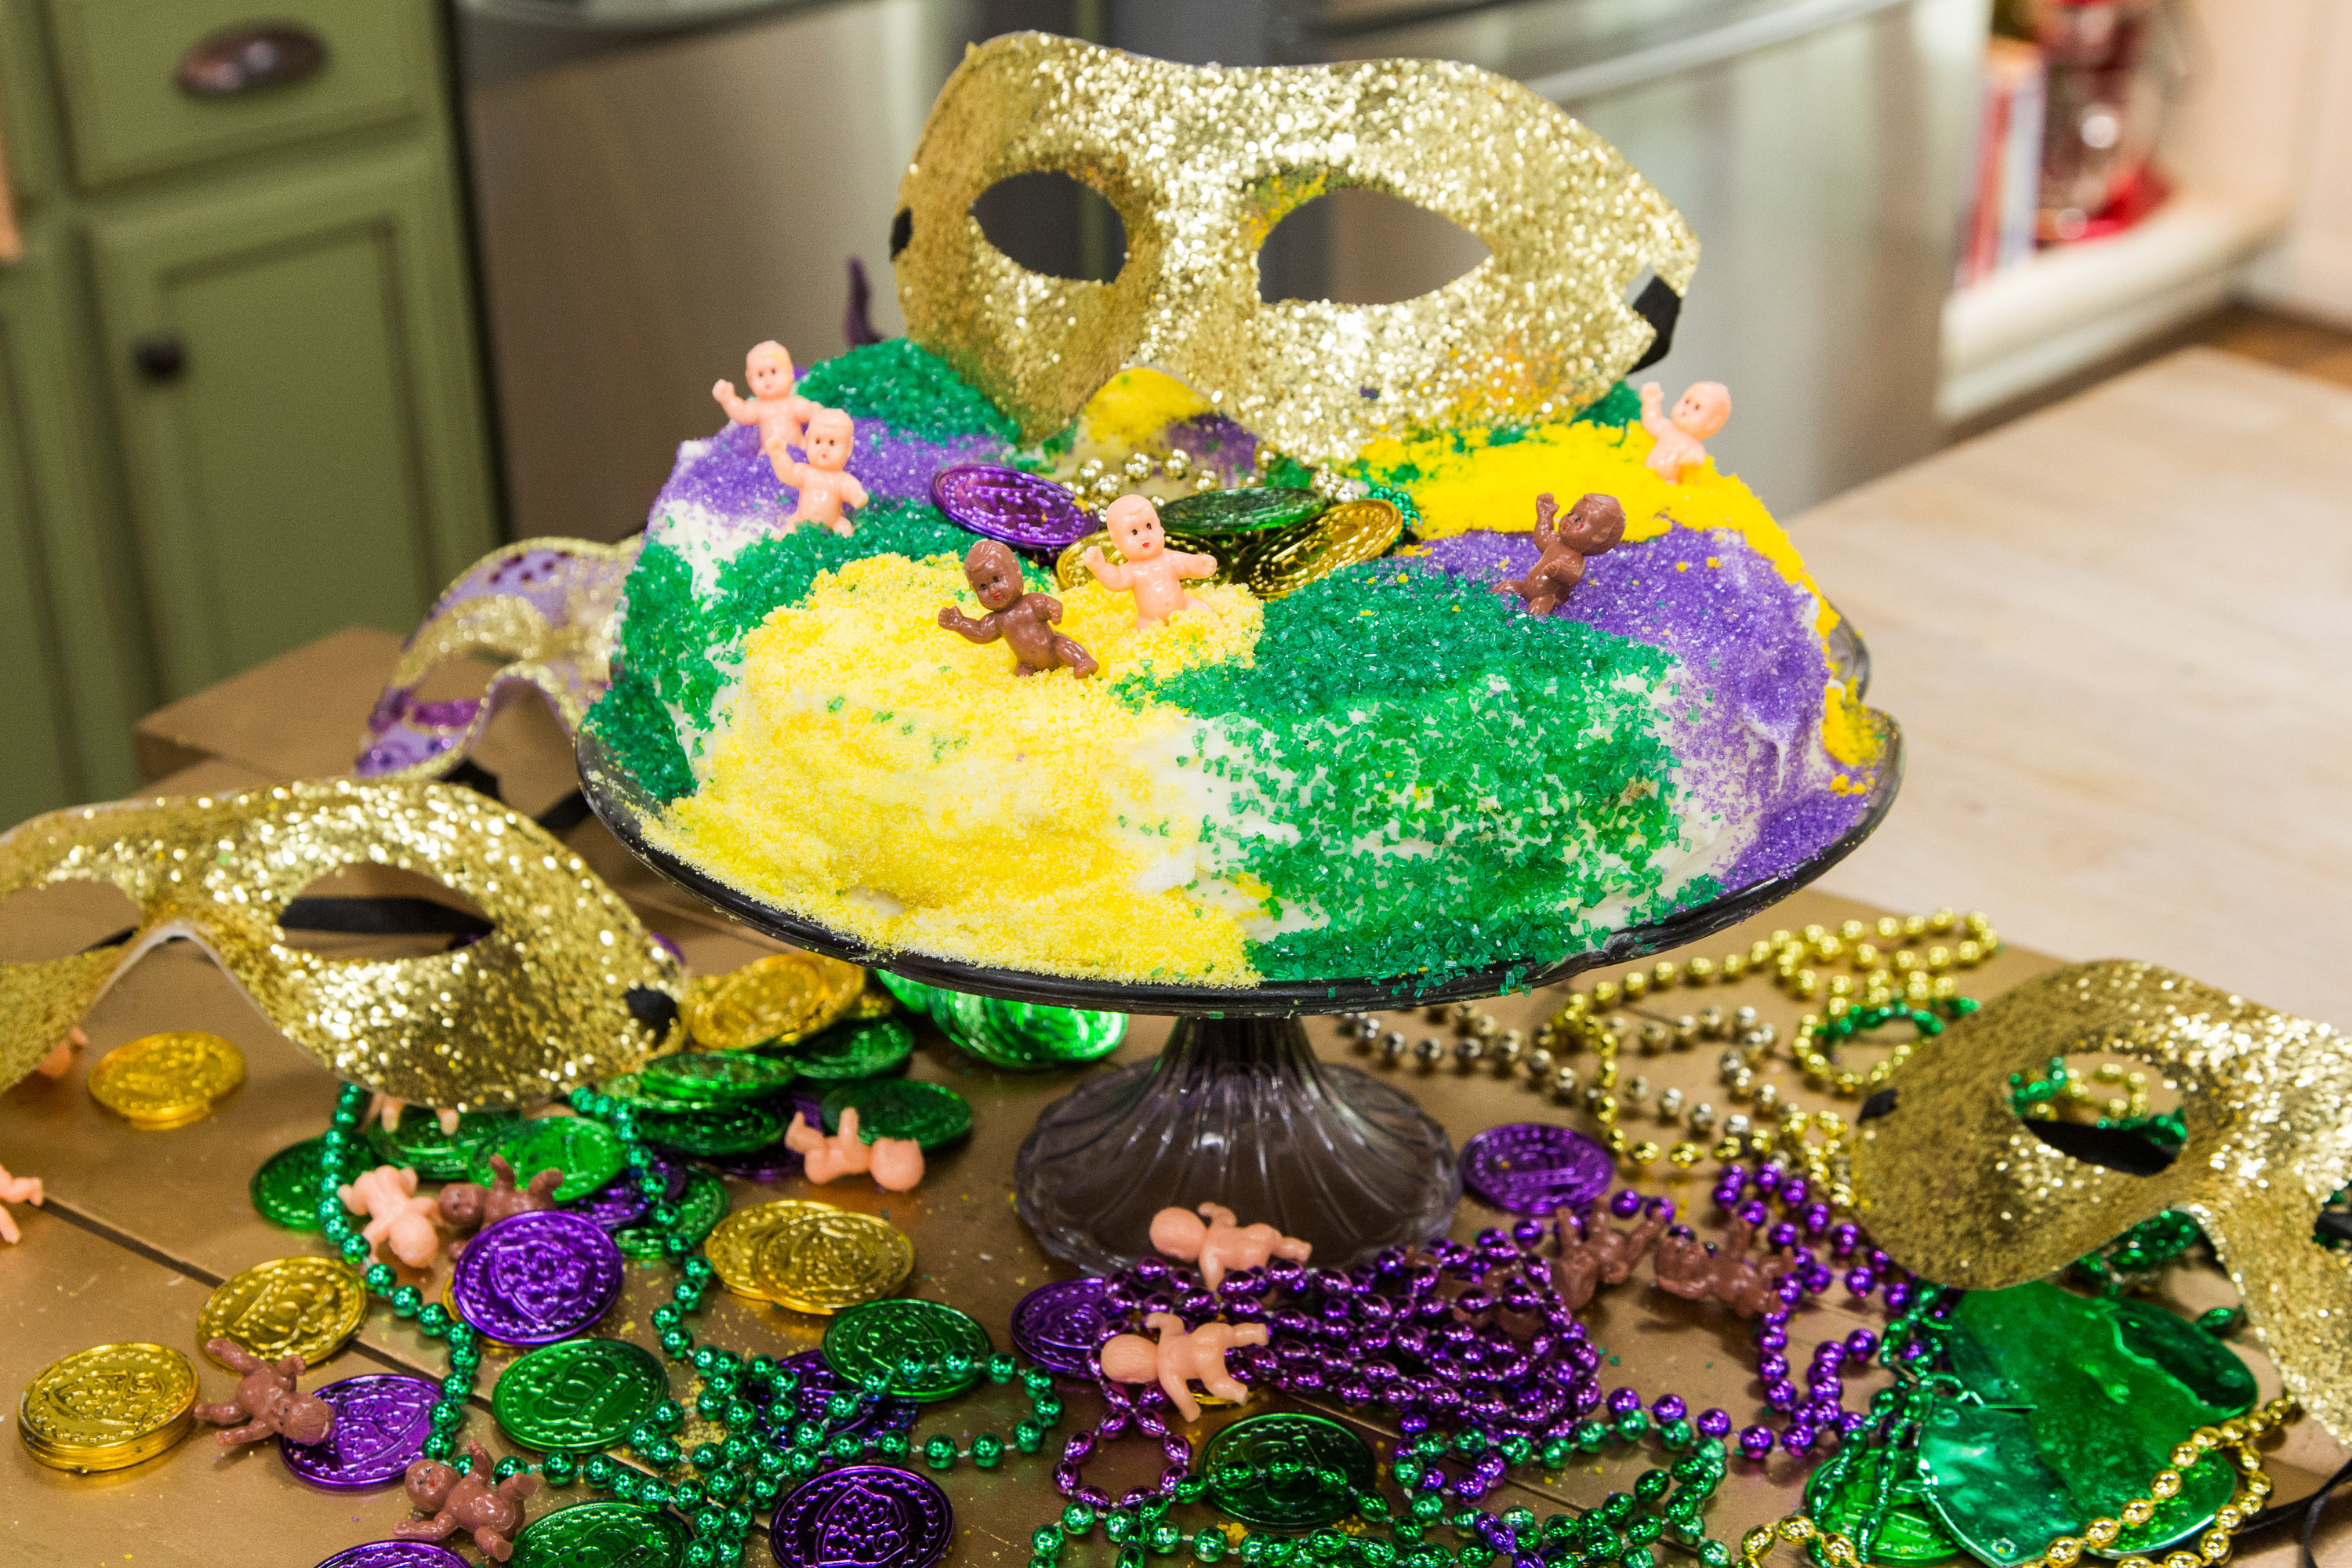 King Cake King Cake new photo